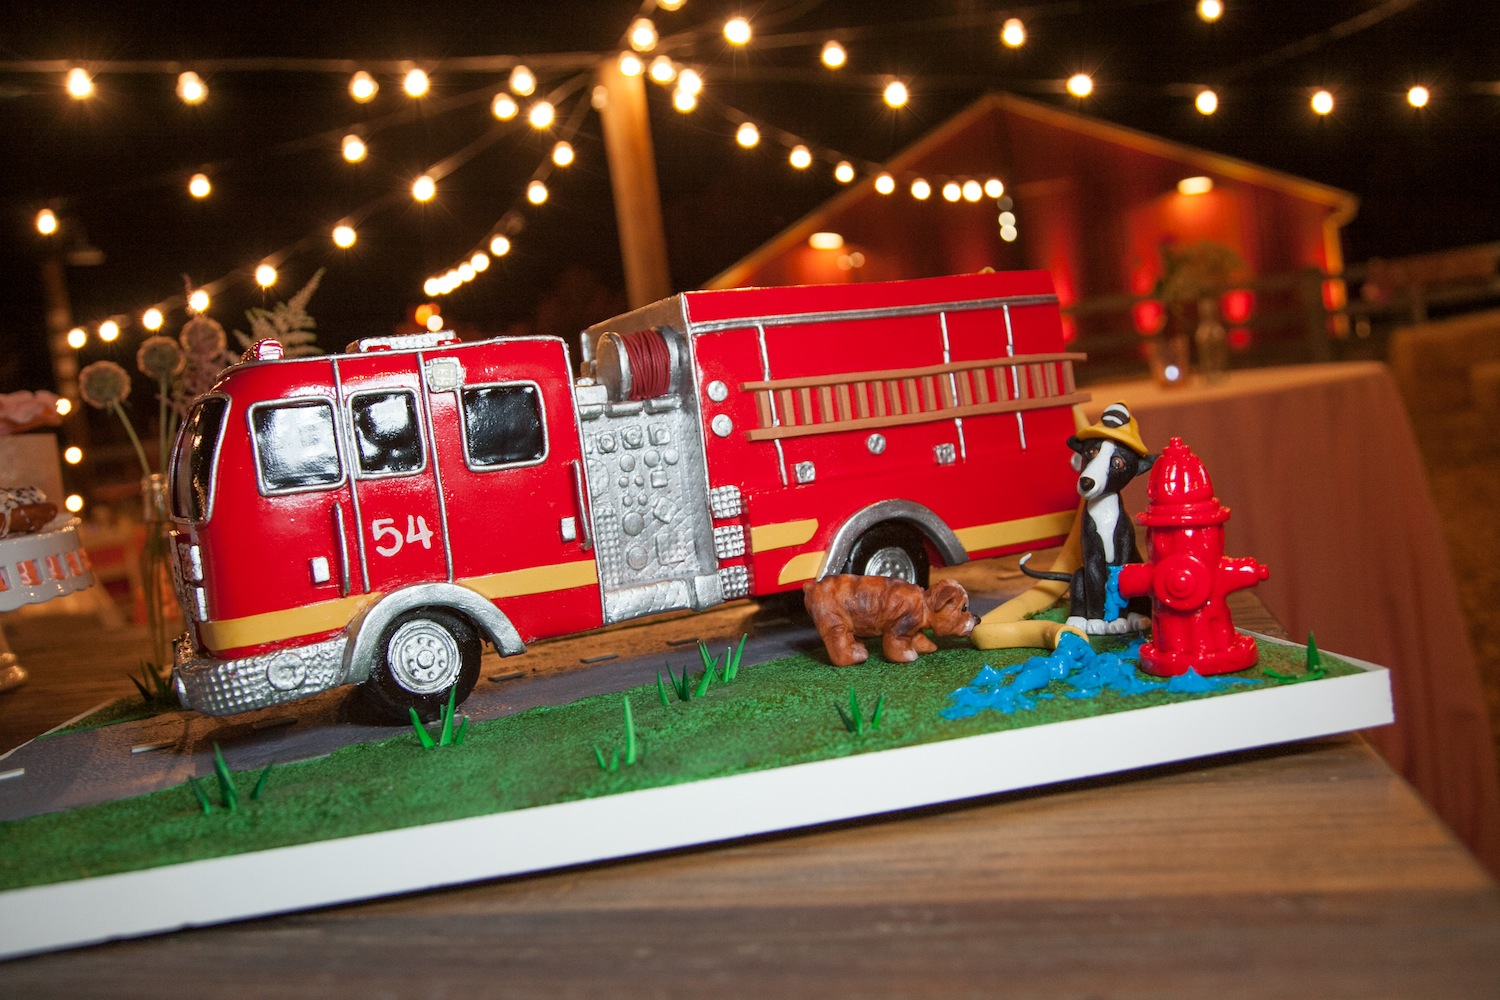 firetruck groom's cake for firefighter with dogs